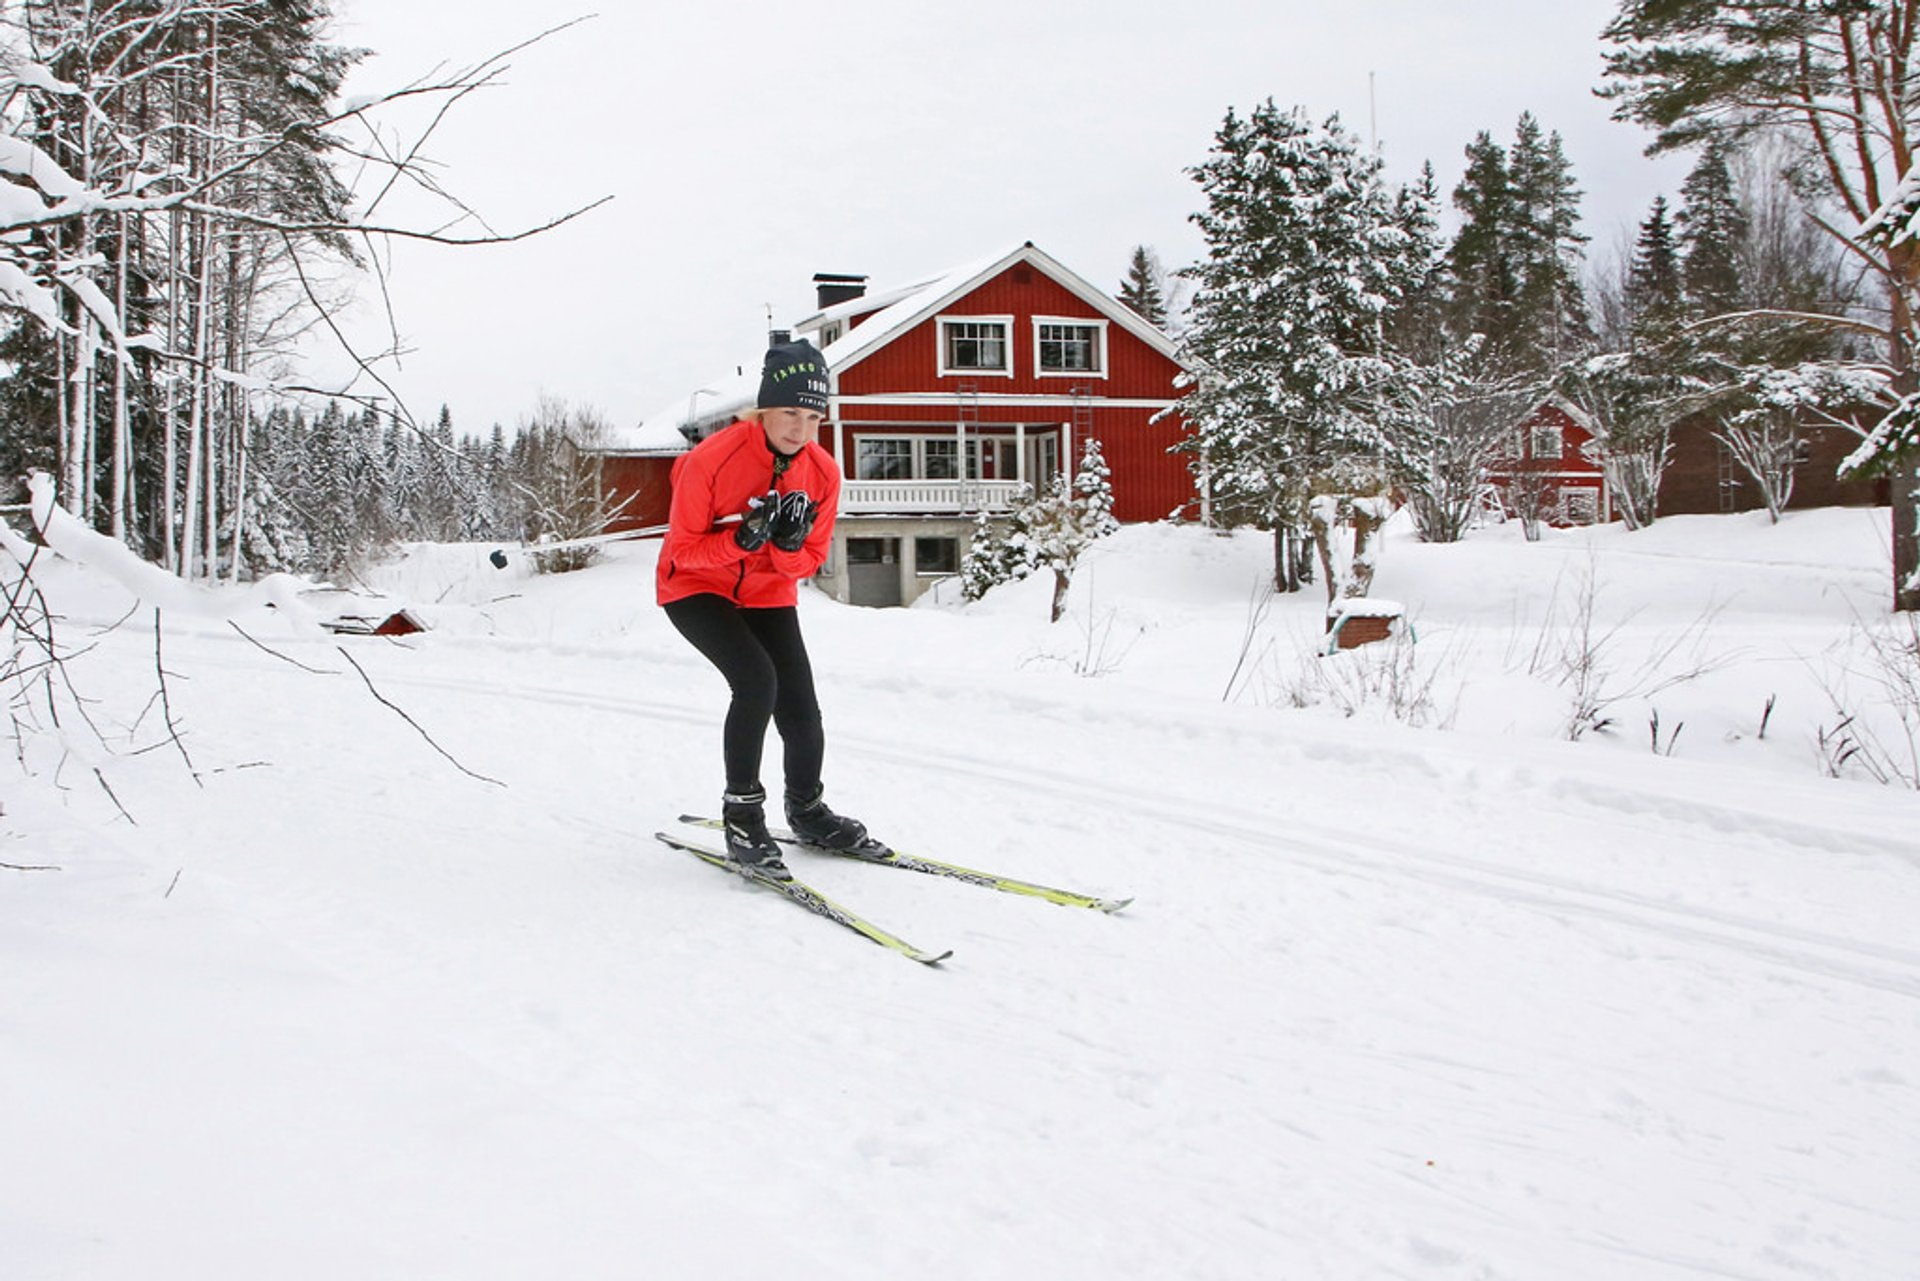 Cross-Country Skiing in Finland 2020 - Best Time